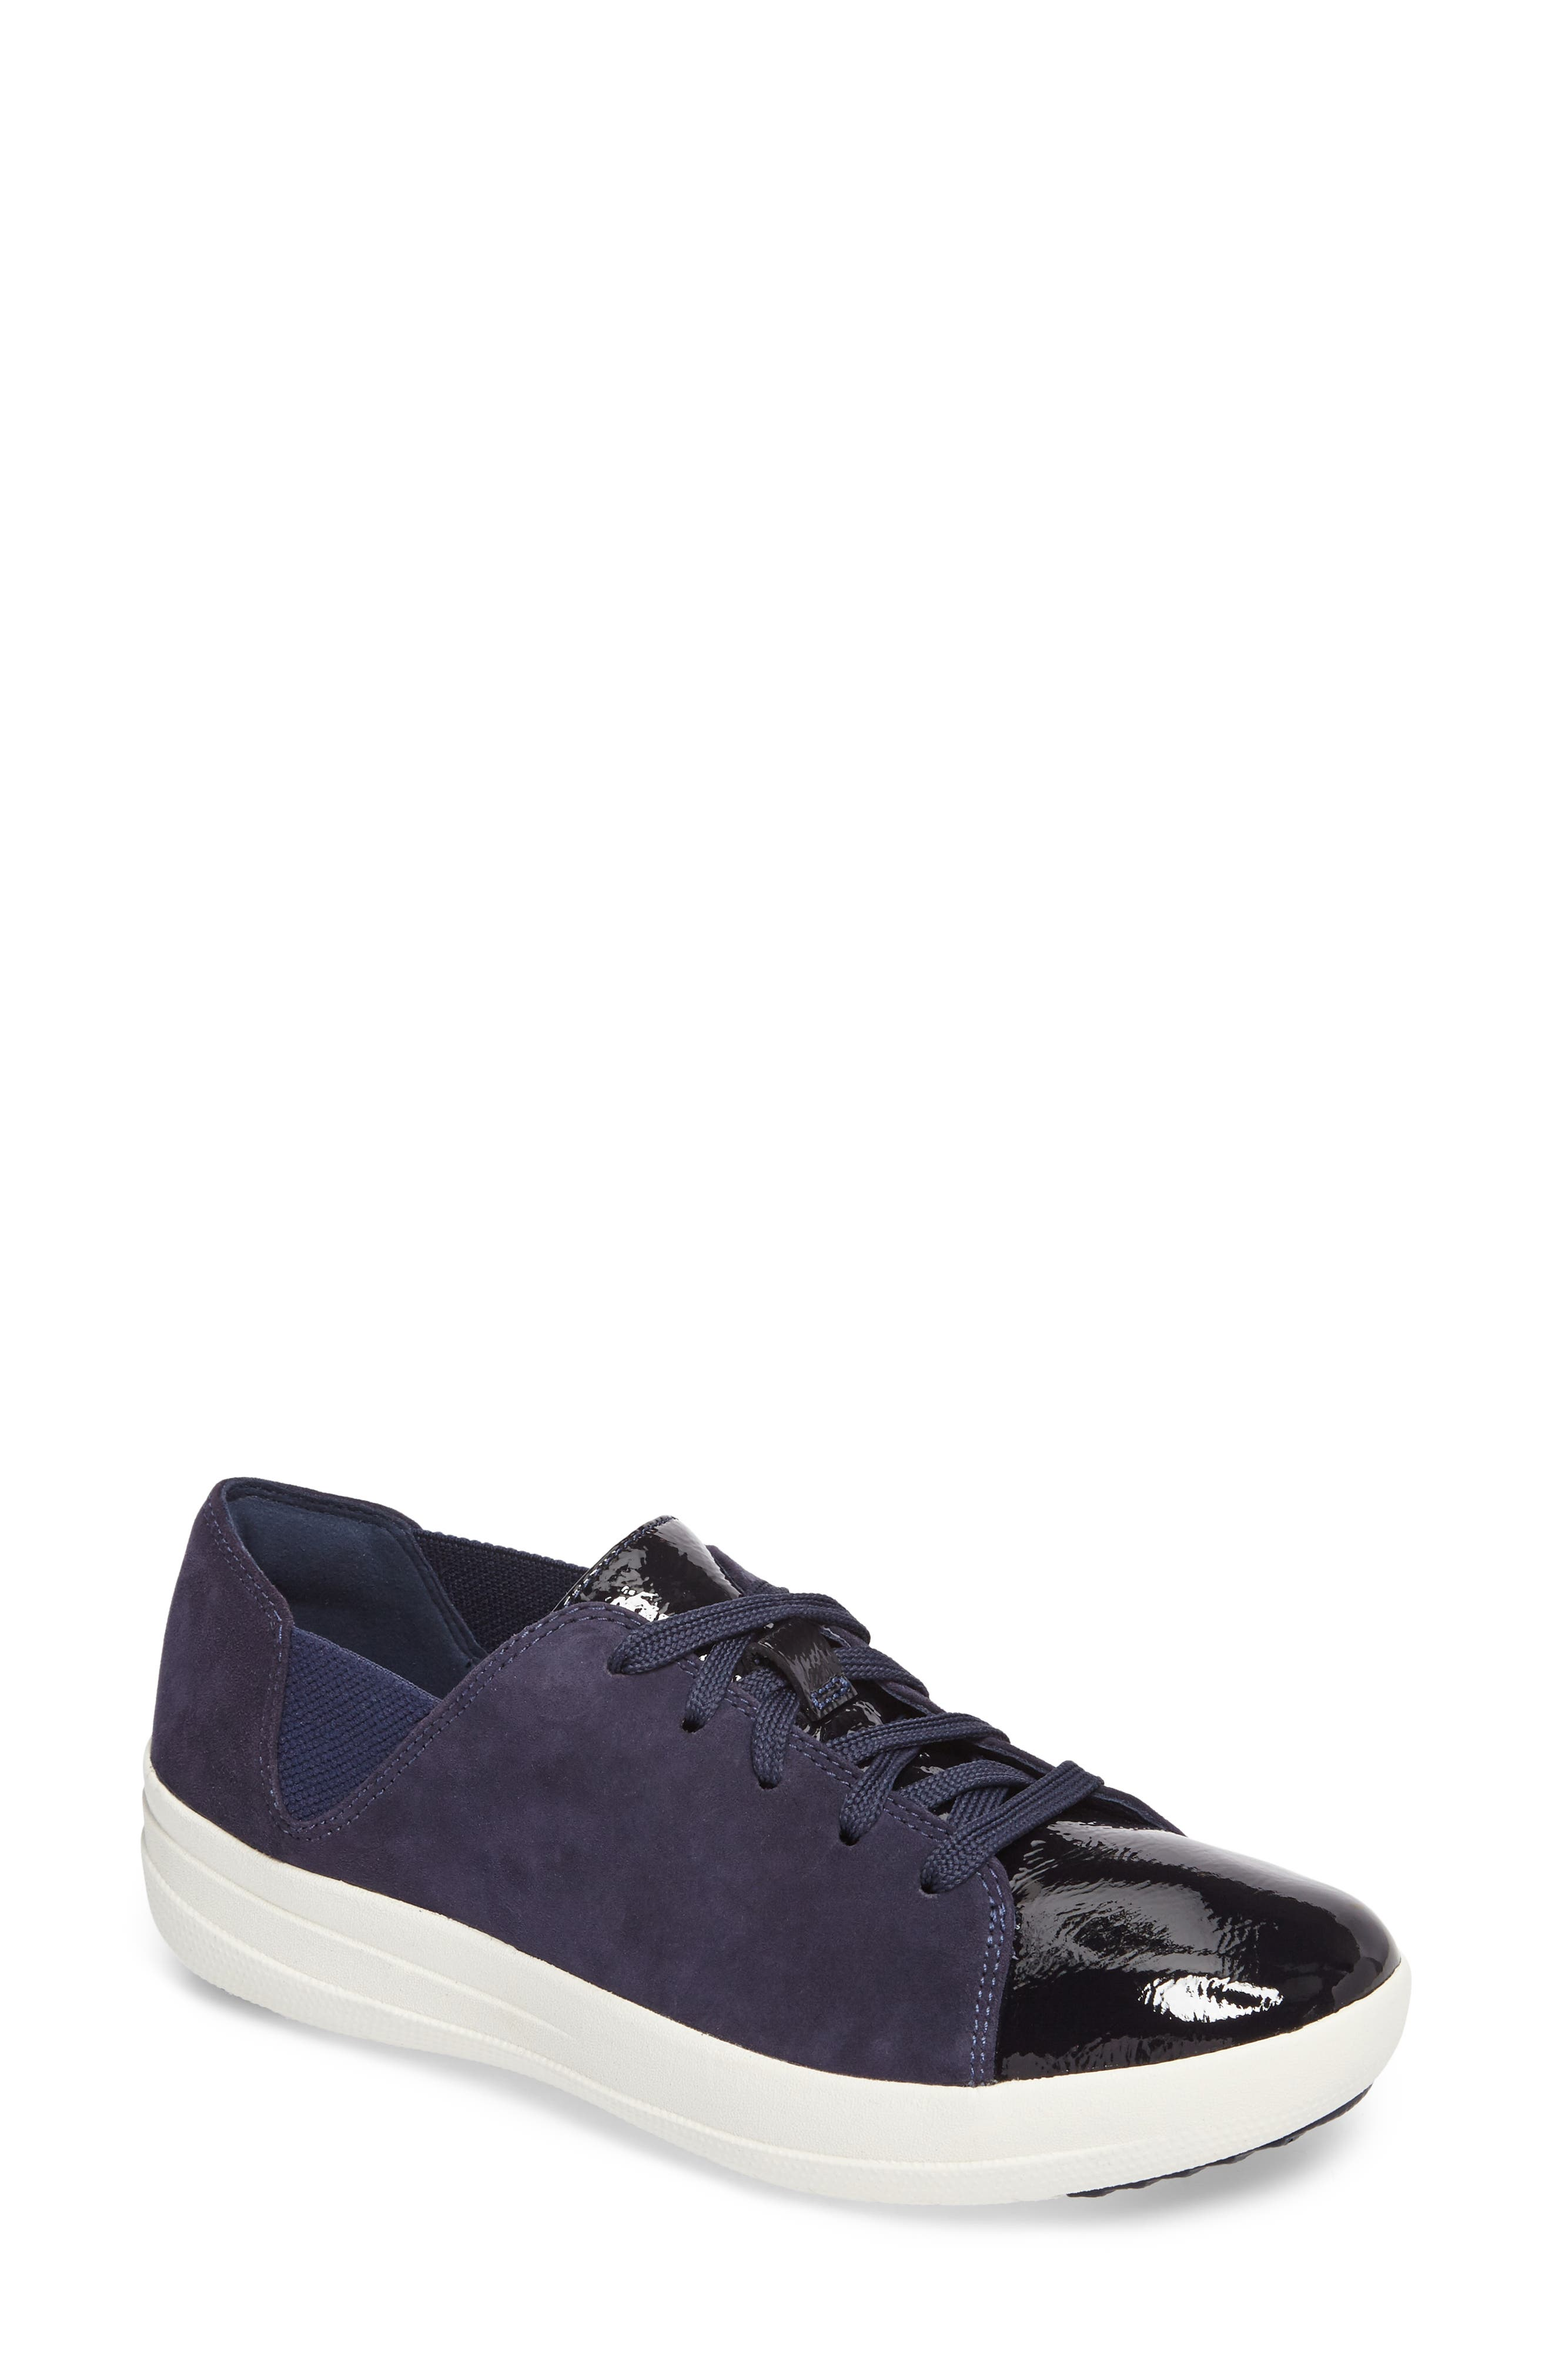 F-Sporty Sneaker,                         Main,                         color, Midnight Navy Mix